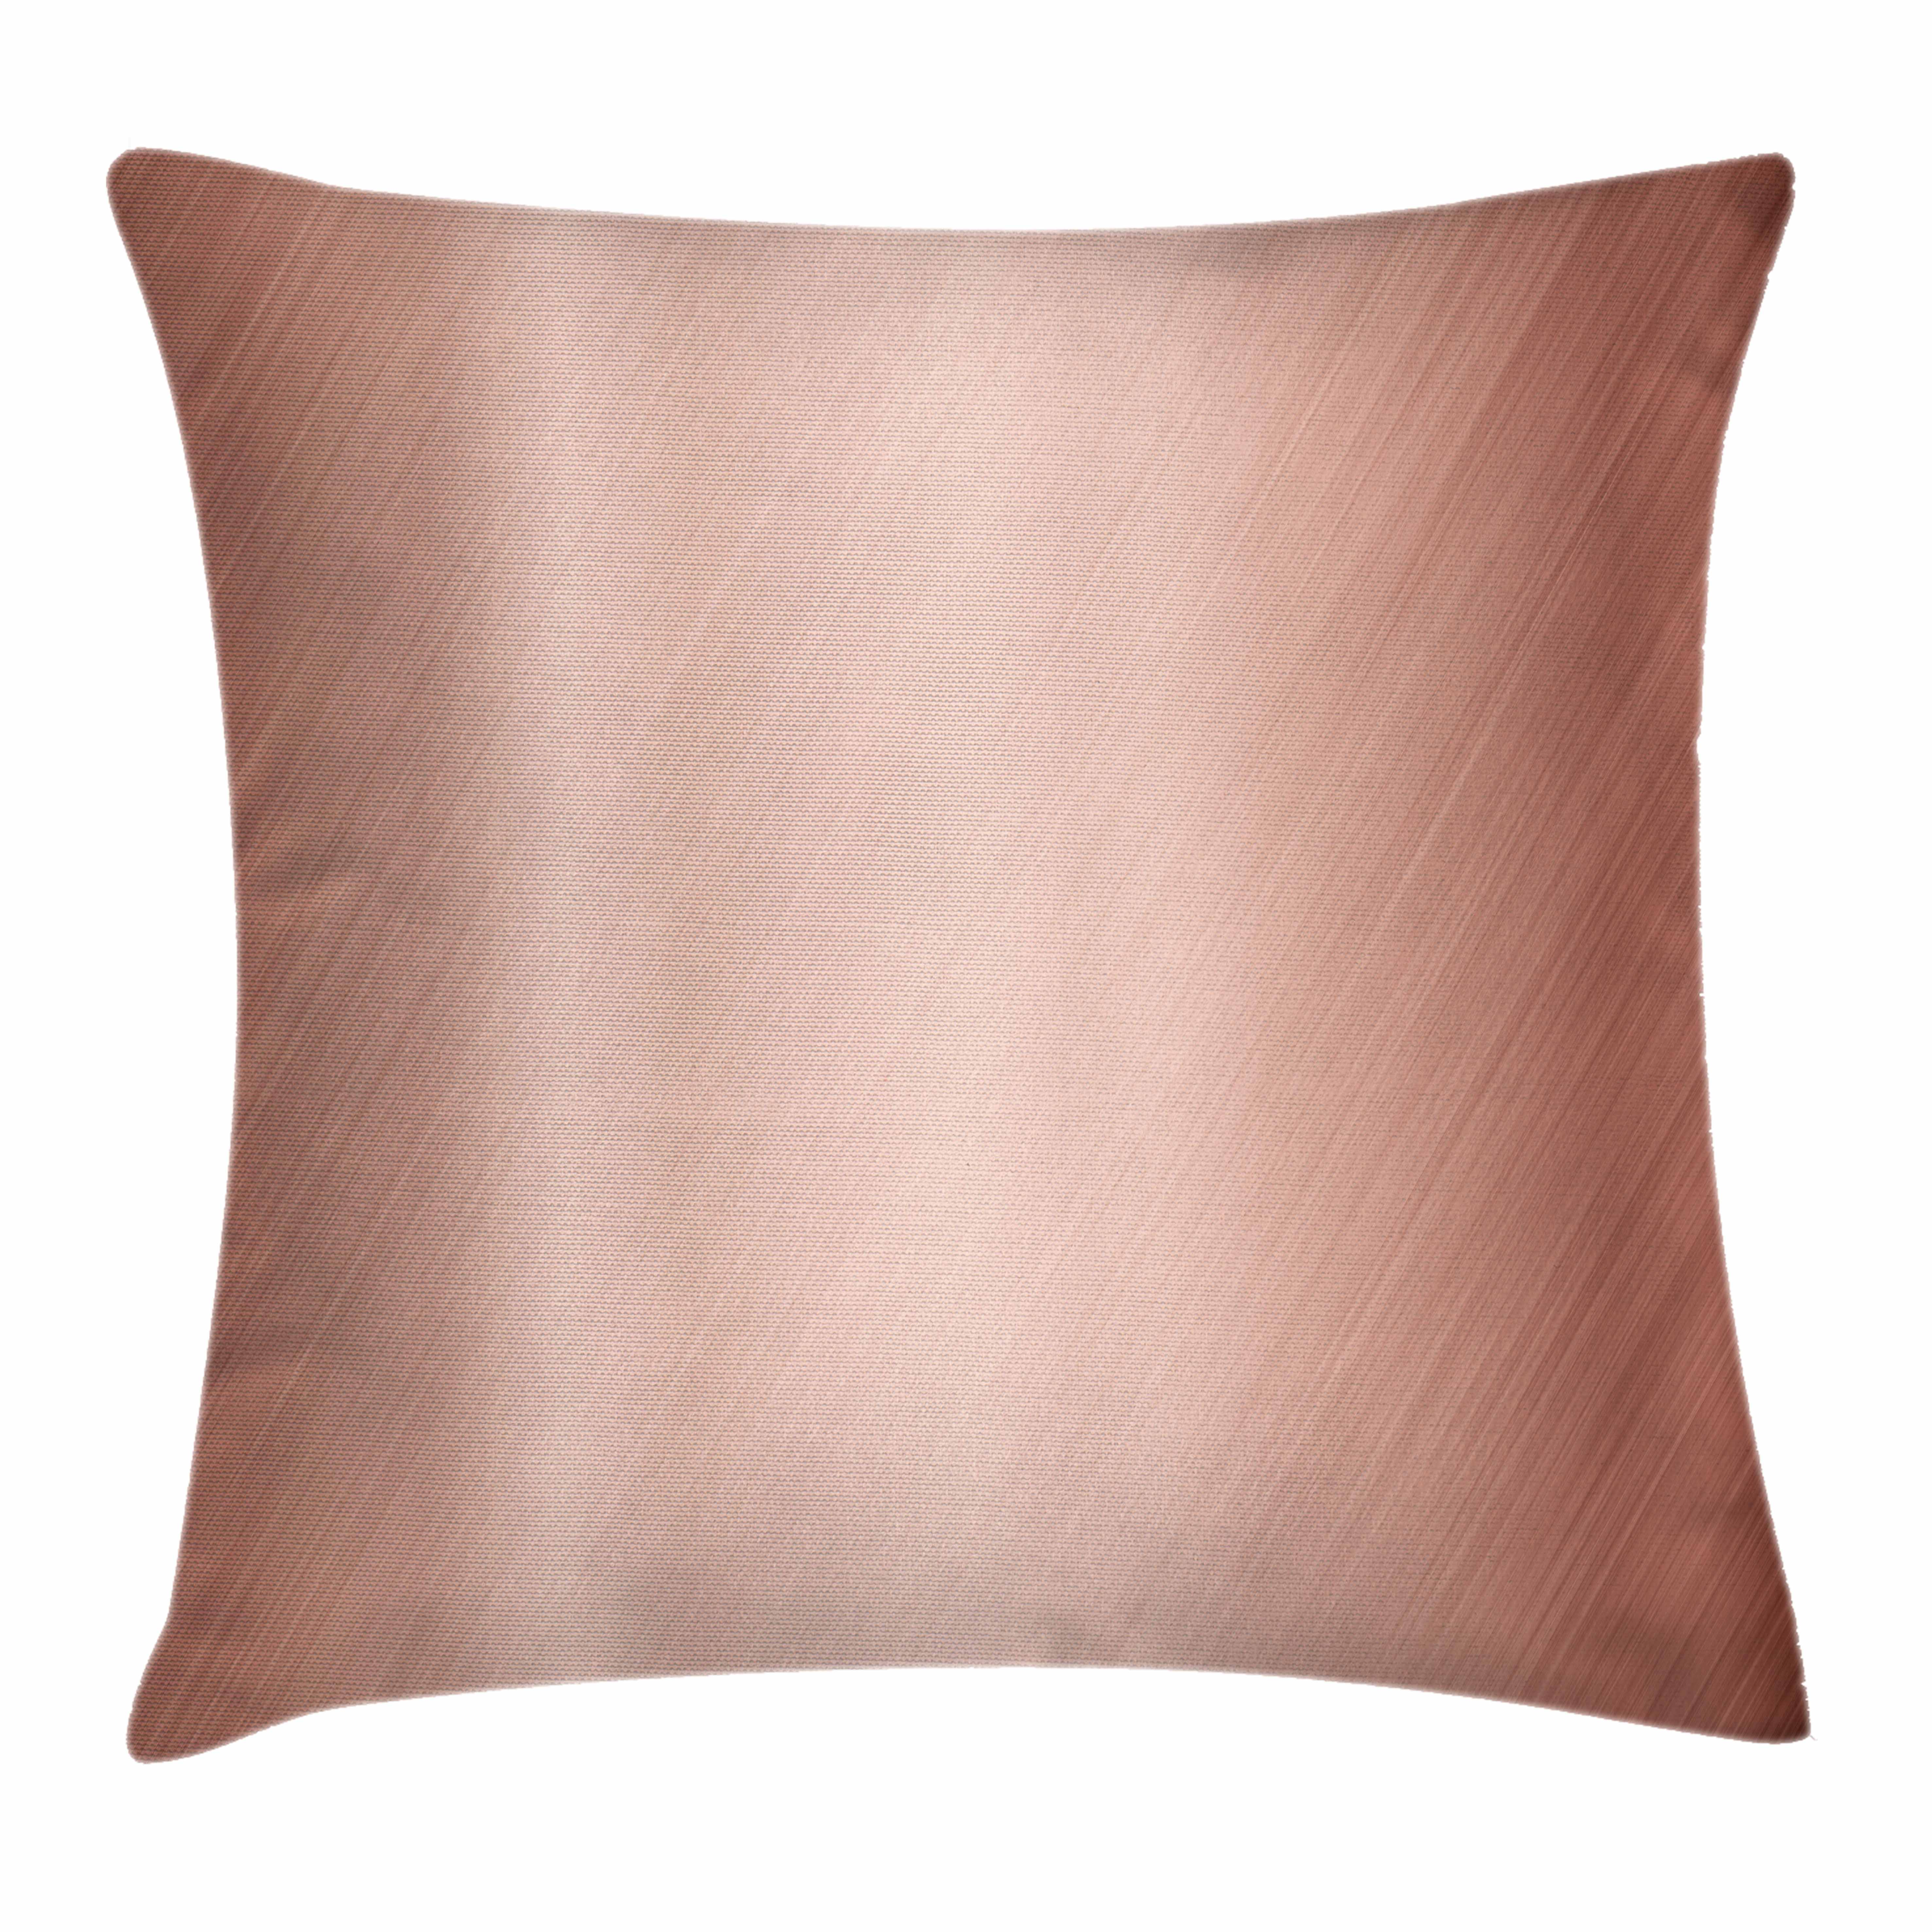 Copper Decor Throw Pillow Cushion Cover, Abstract Smooth Alloy Surface Image Diagonal Lines with Reflection, Decorative Square Accent Pillow Case, 24 X 24 Inches, Bronze Light Bronze, by Ambesonne